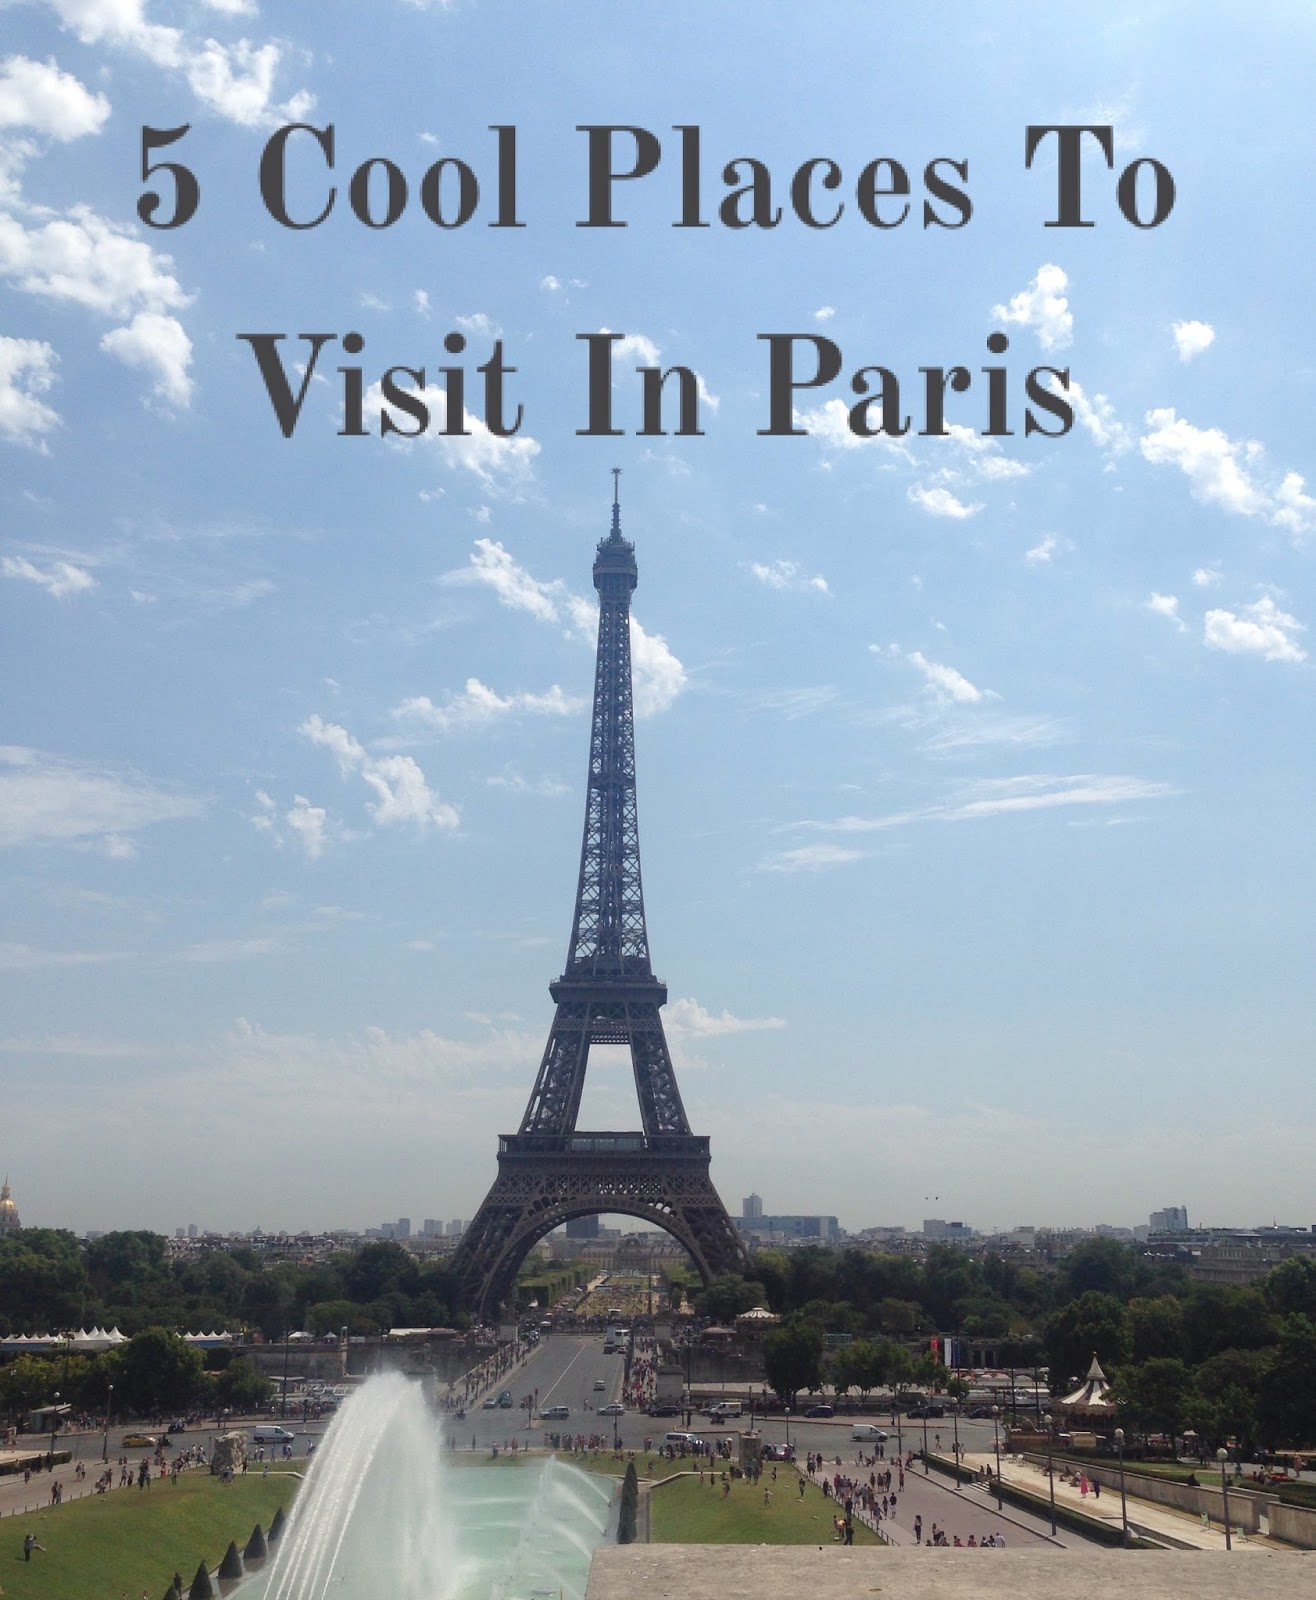 Hey mil 5 cool places to visit in paris for Awesome places to vacation